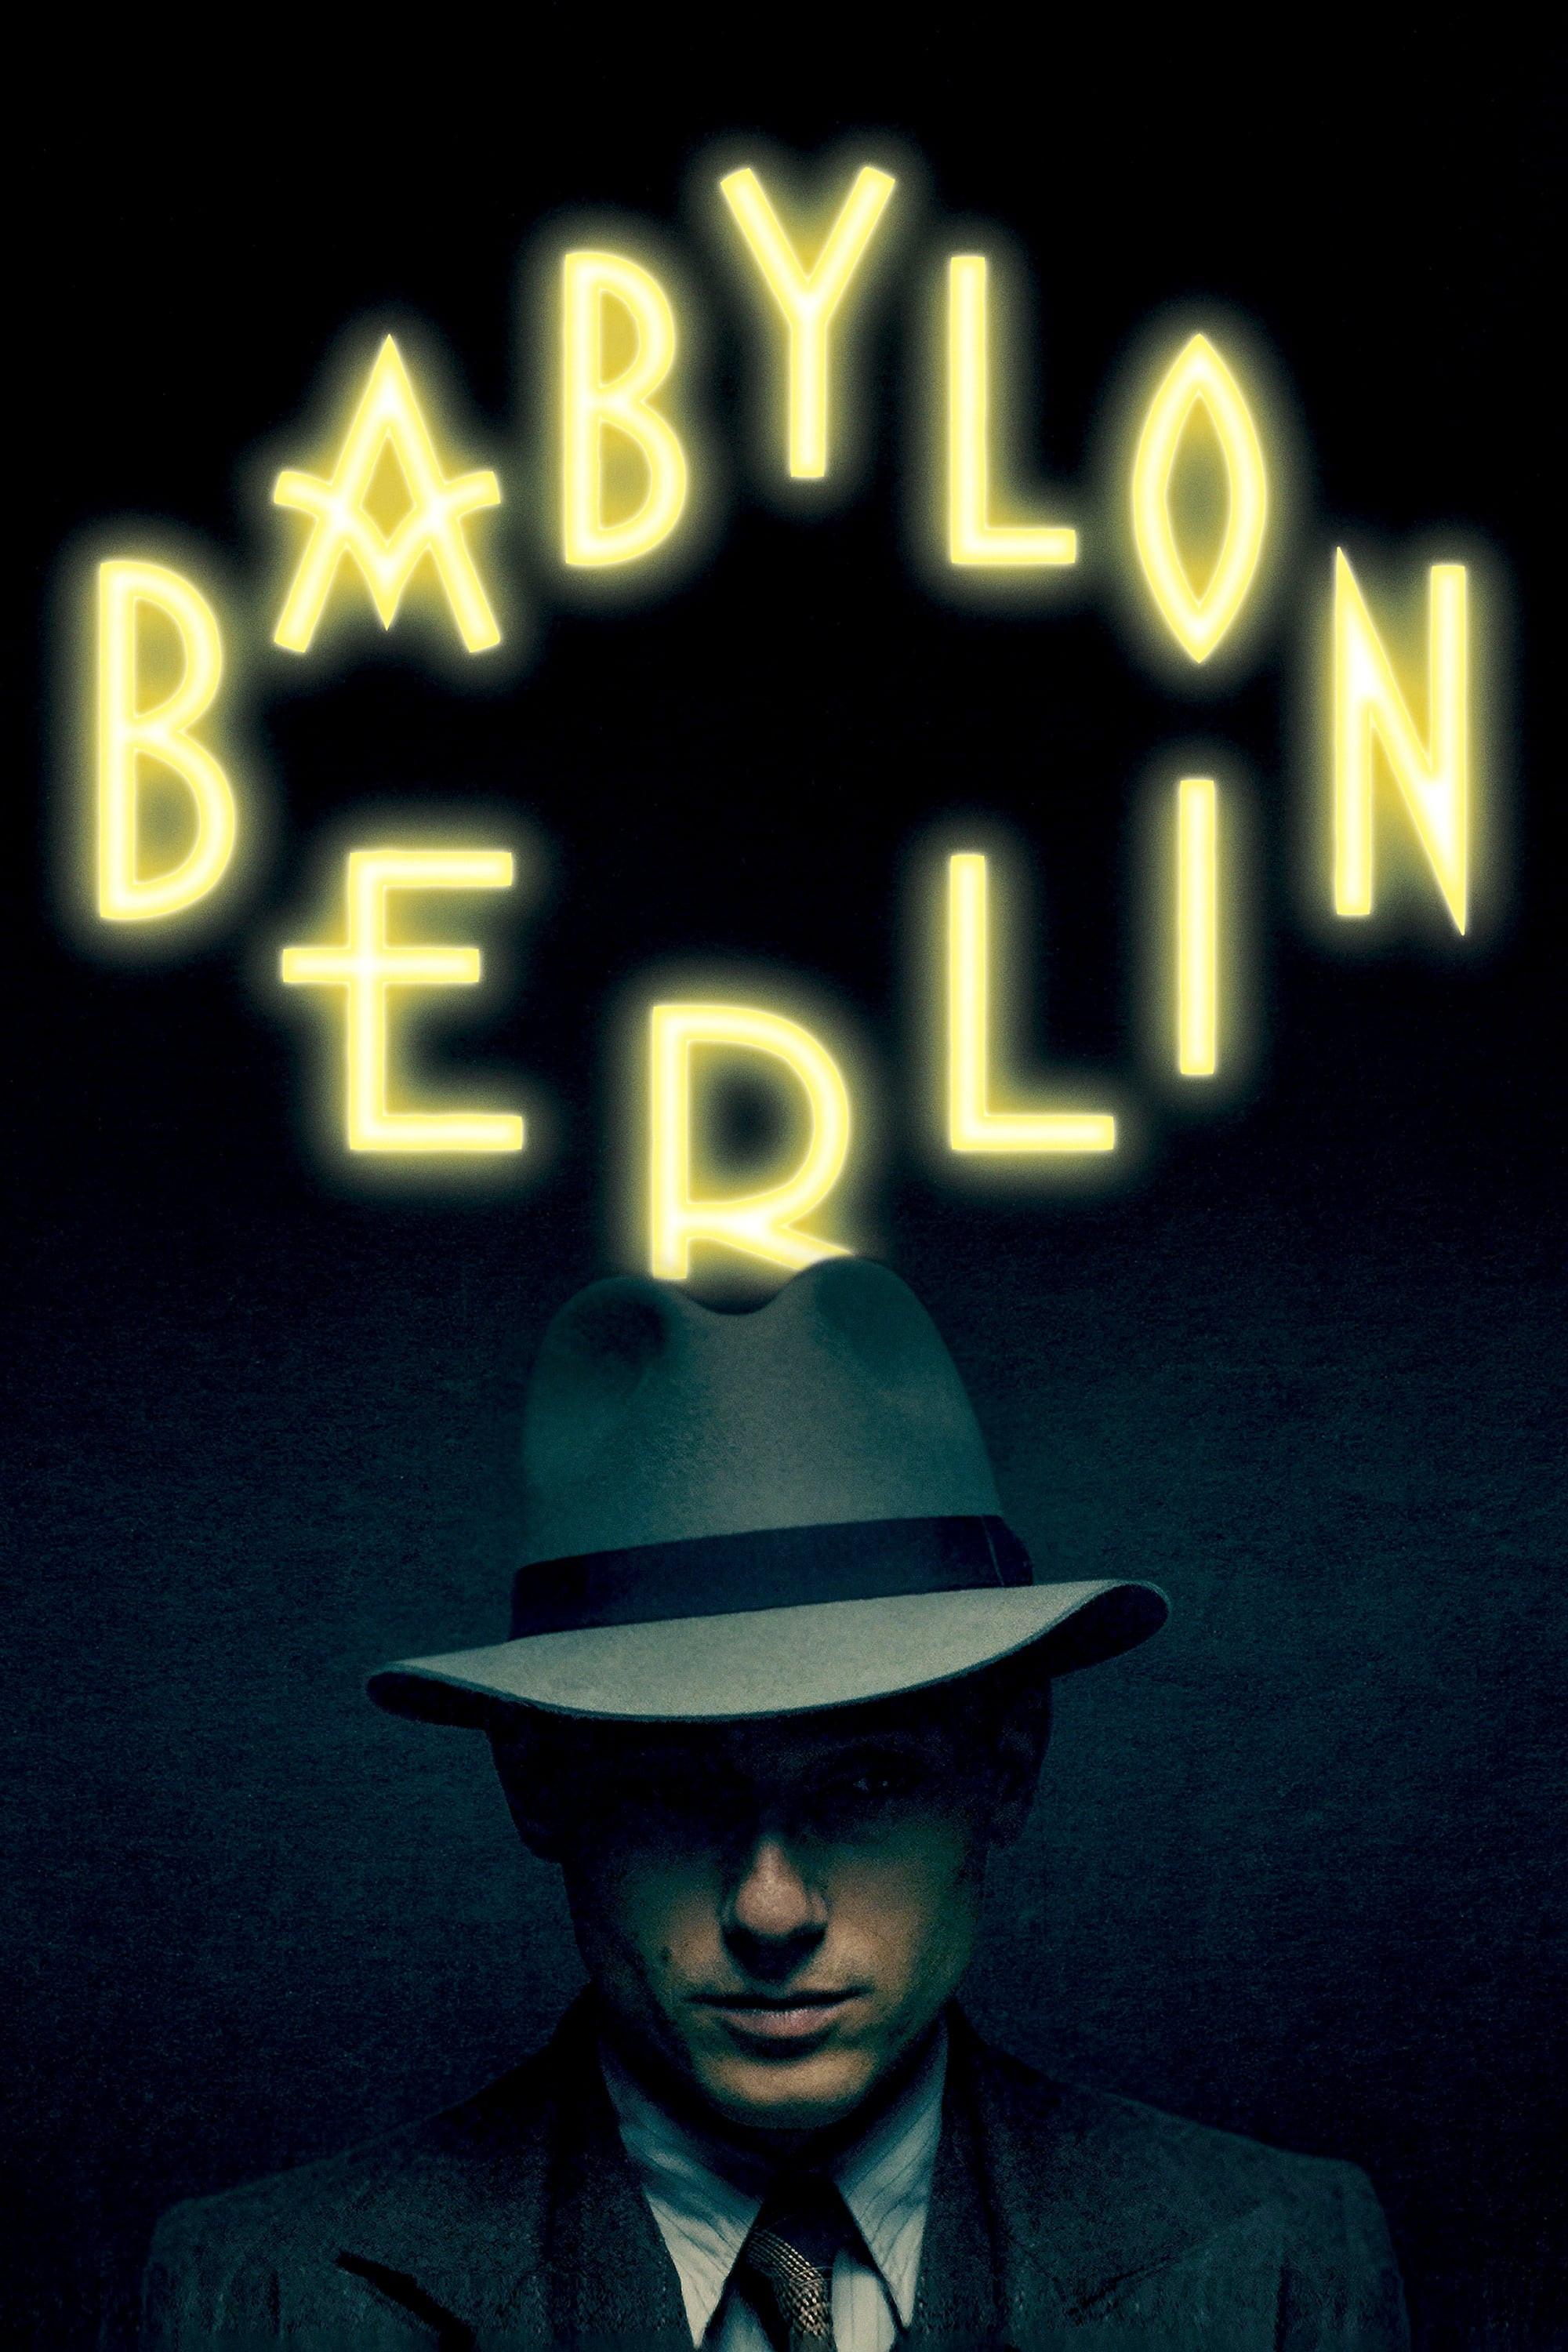 Babylon Berlin Series